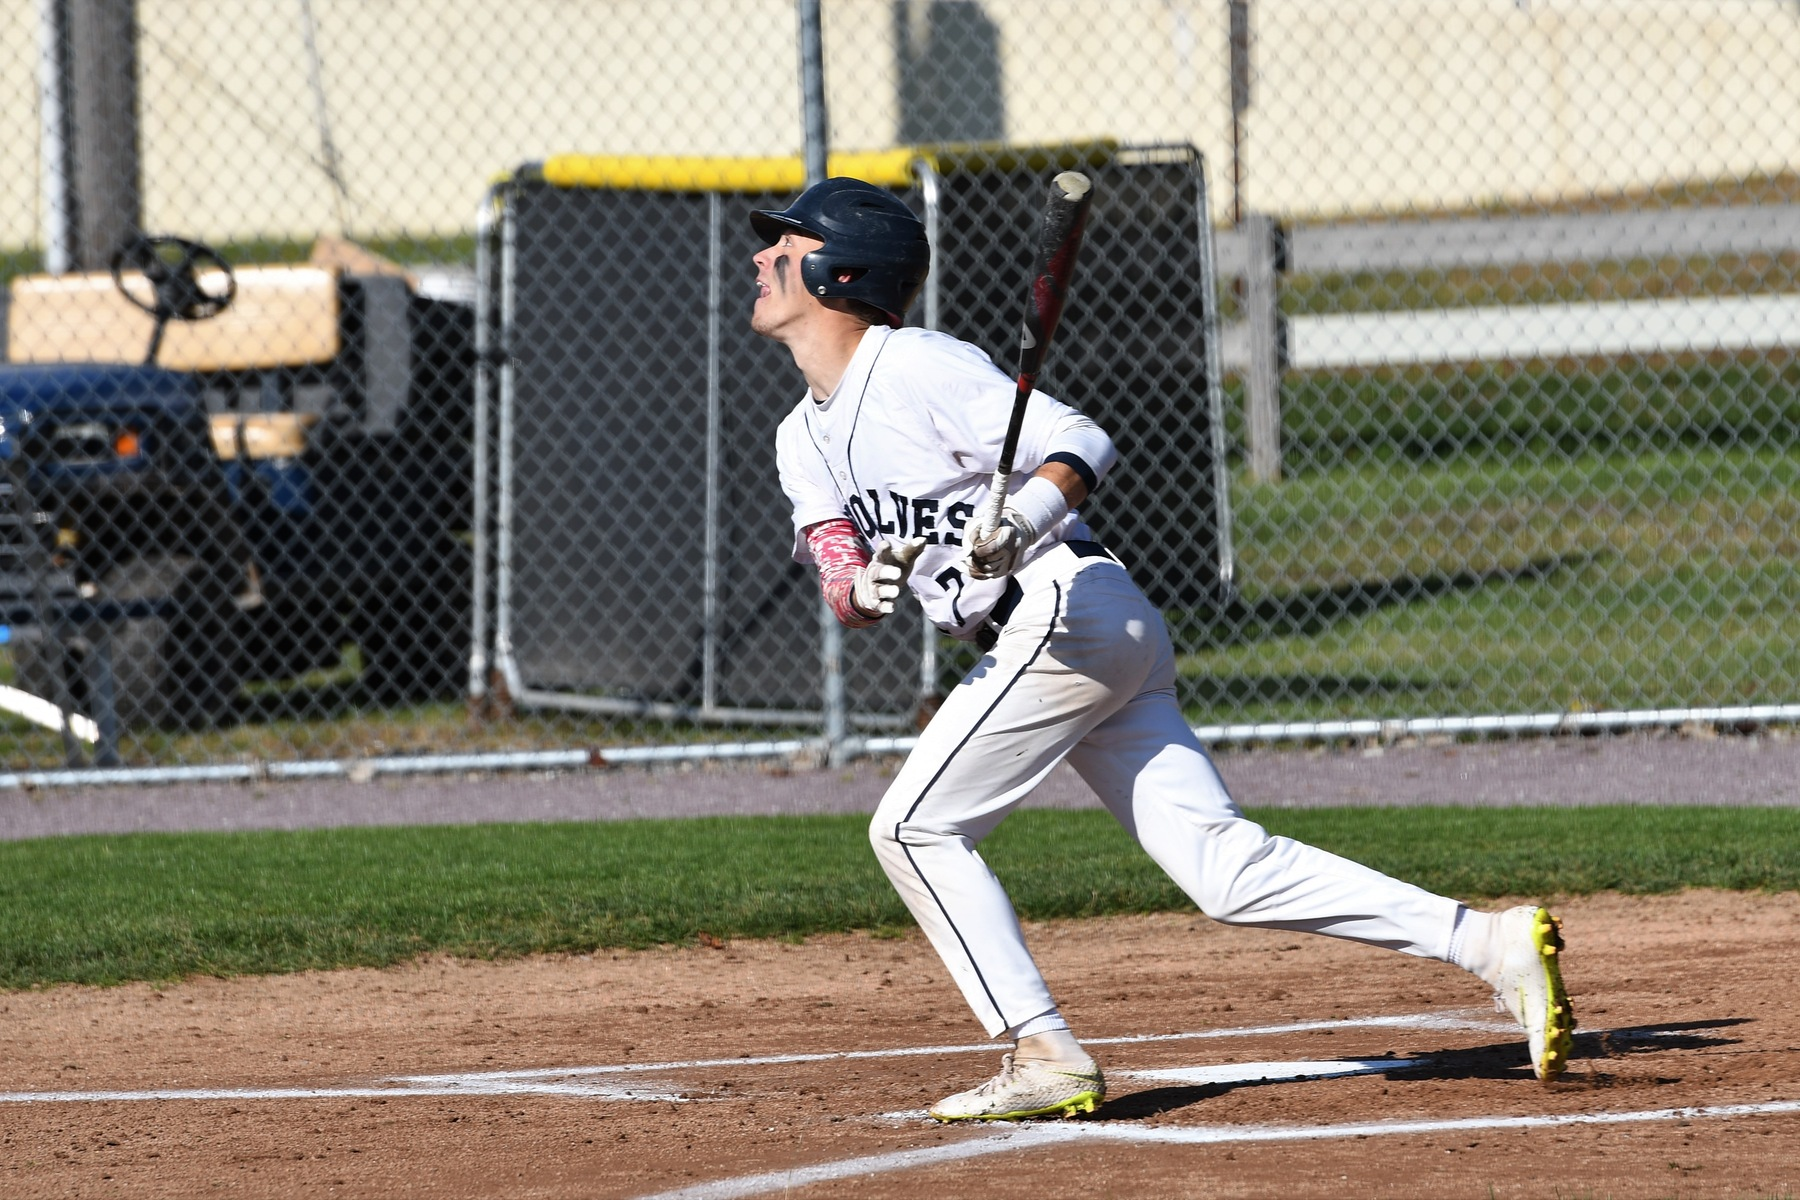 SMCC Baseball Rolls at Wilkes-Barre, Returns Home 4-0